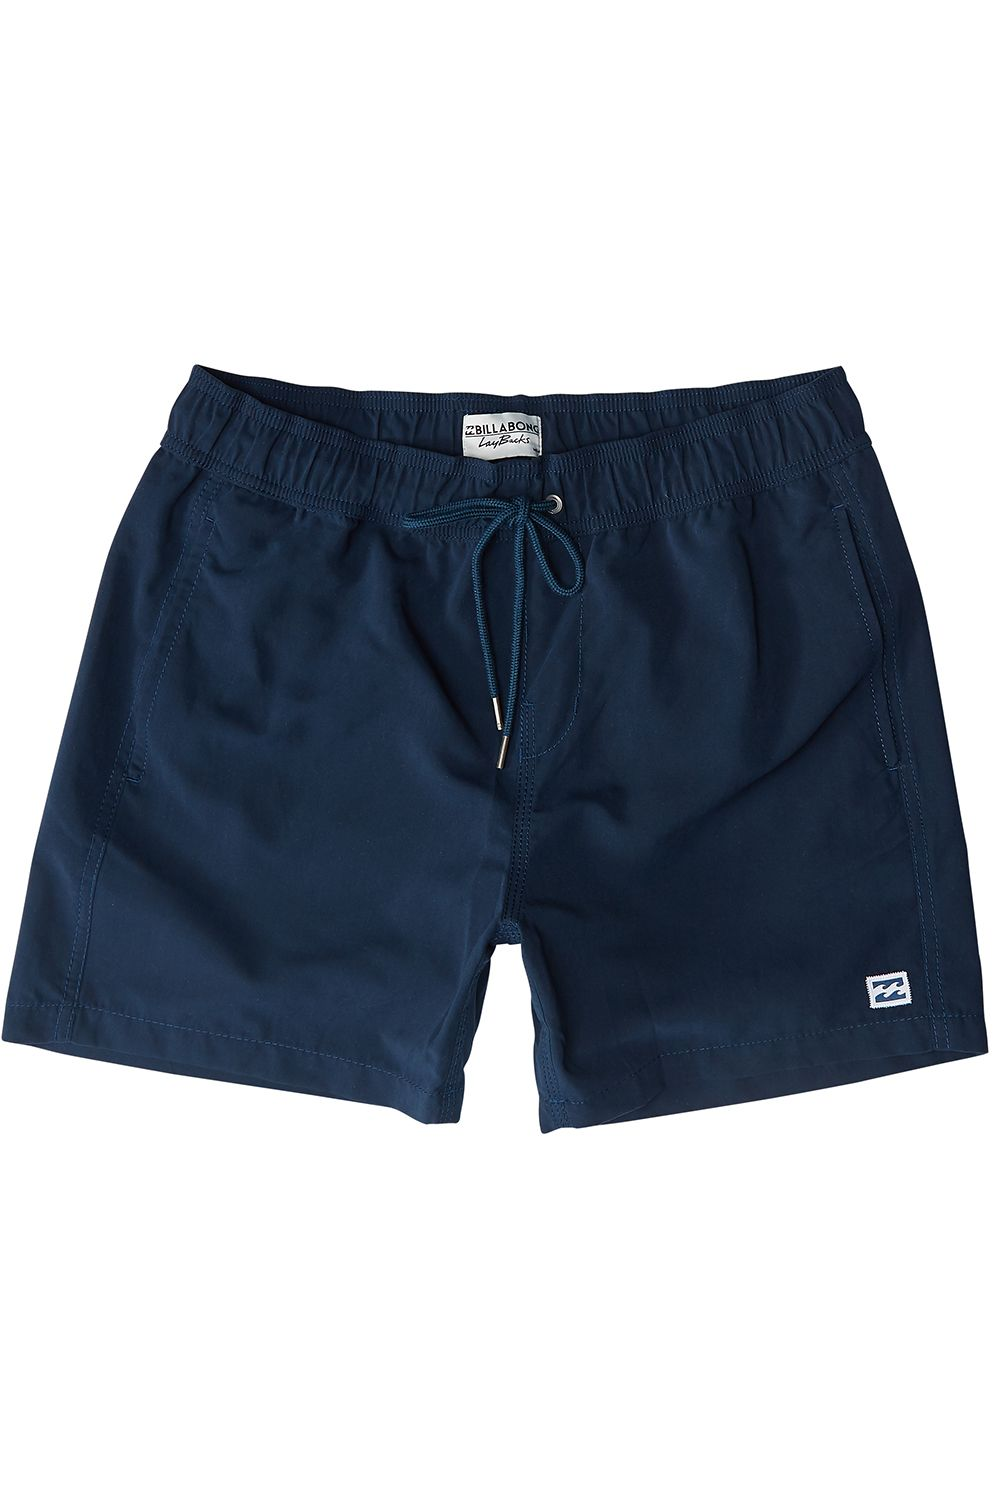 Volleys Billabong ALL DAY Navy